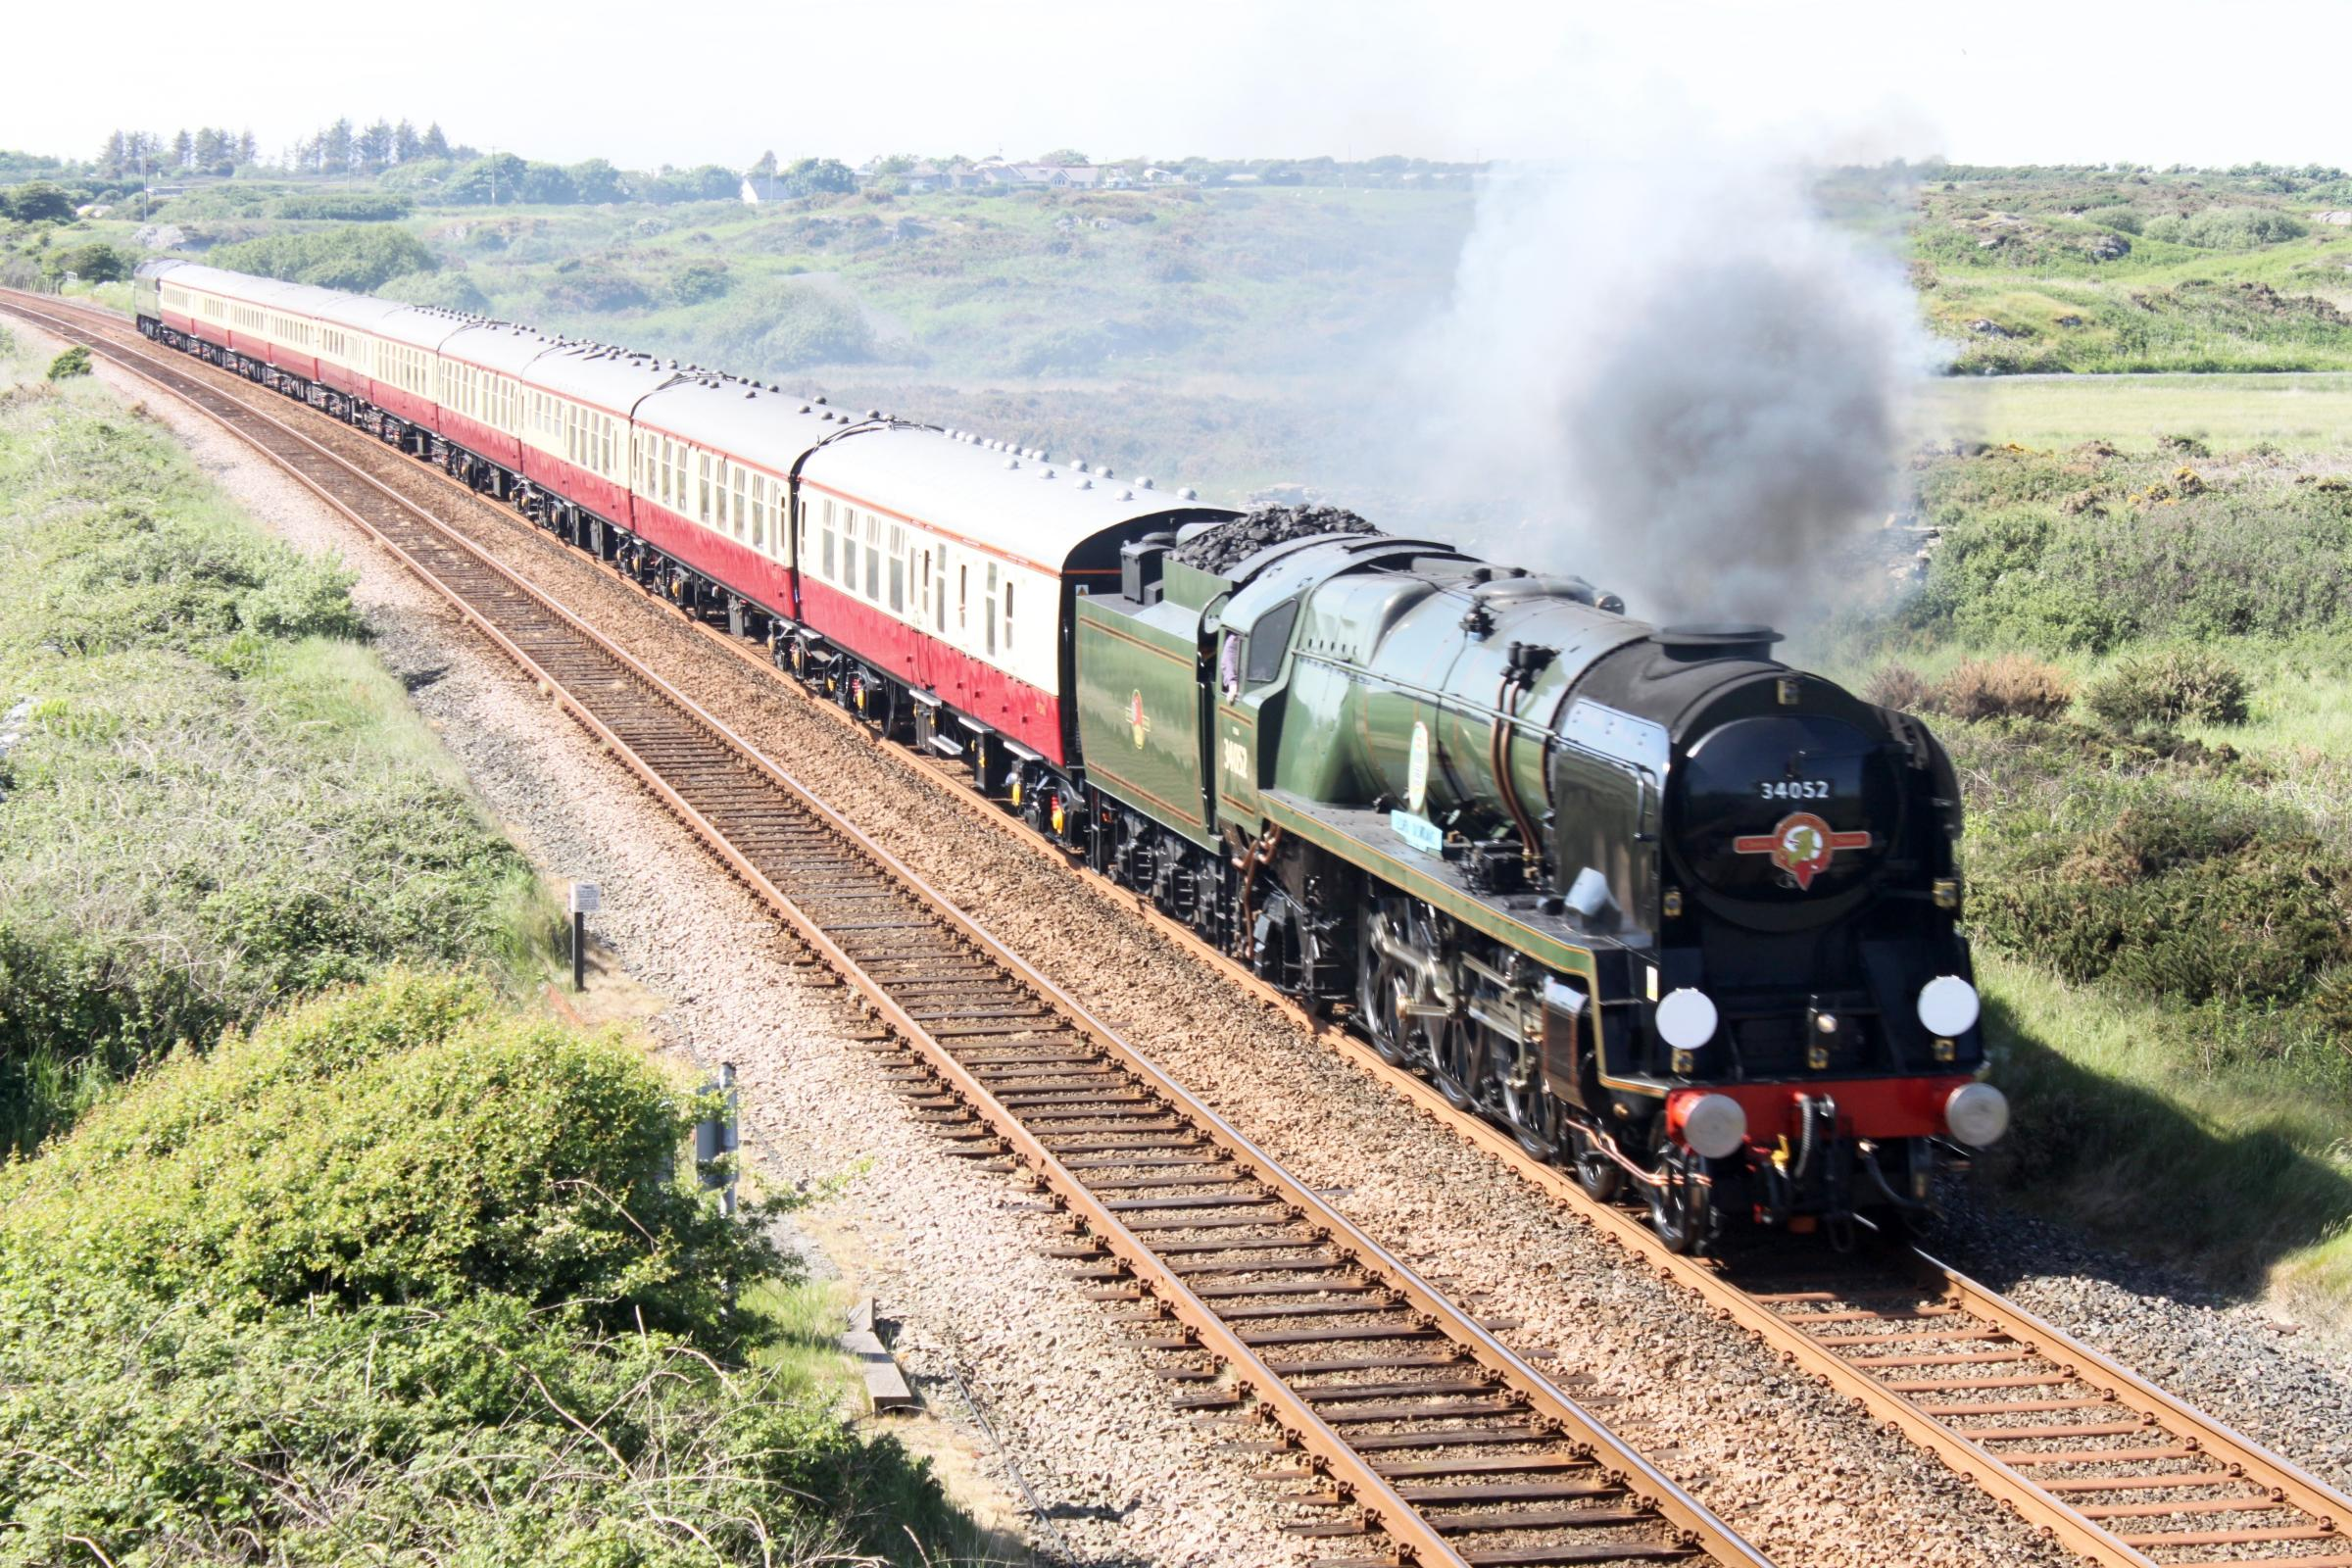 The 34052 Lord Dowding on a trip earlier this year.